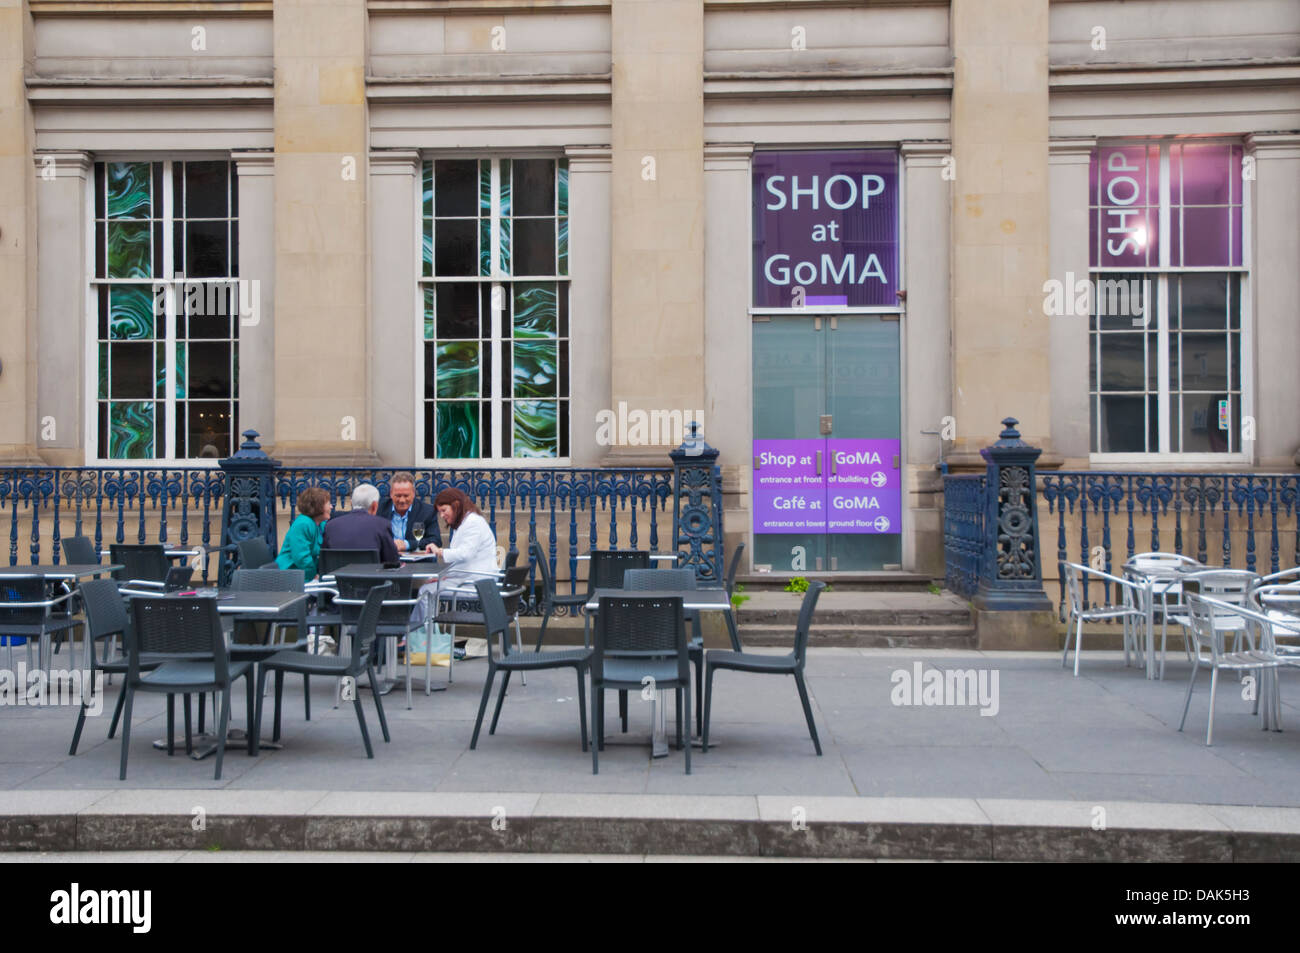 Restaurant terrace Merchant city central Glasgow Scotland Britain UK Europe - Stock Image